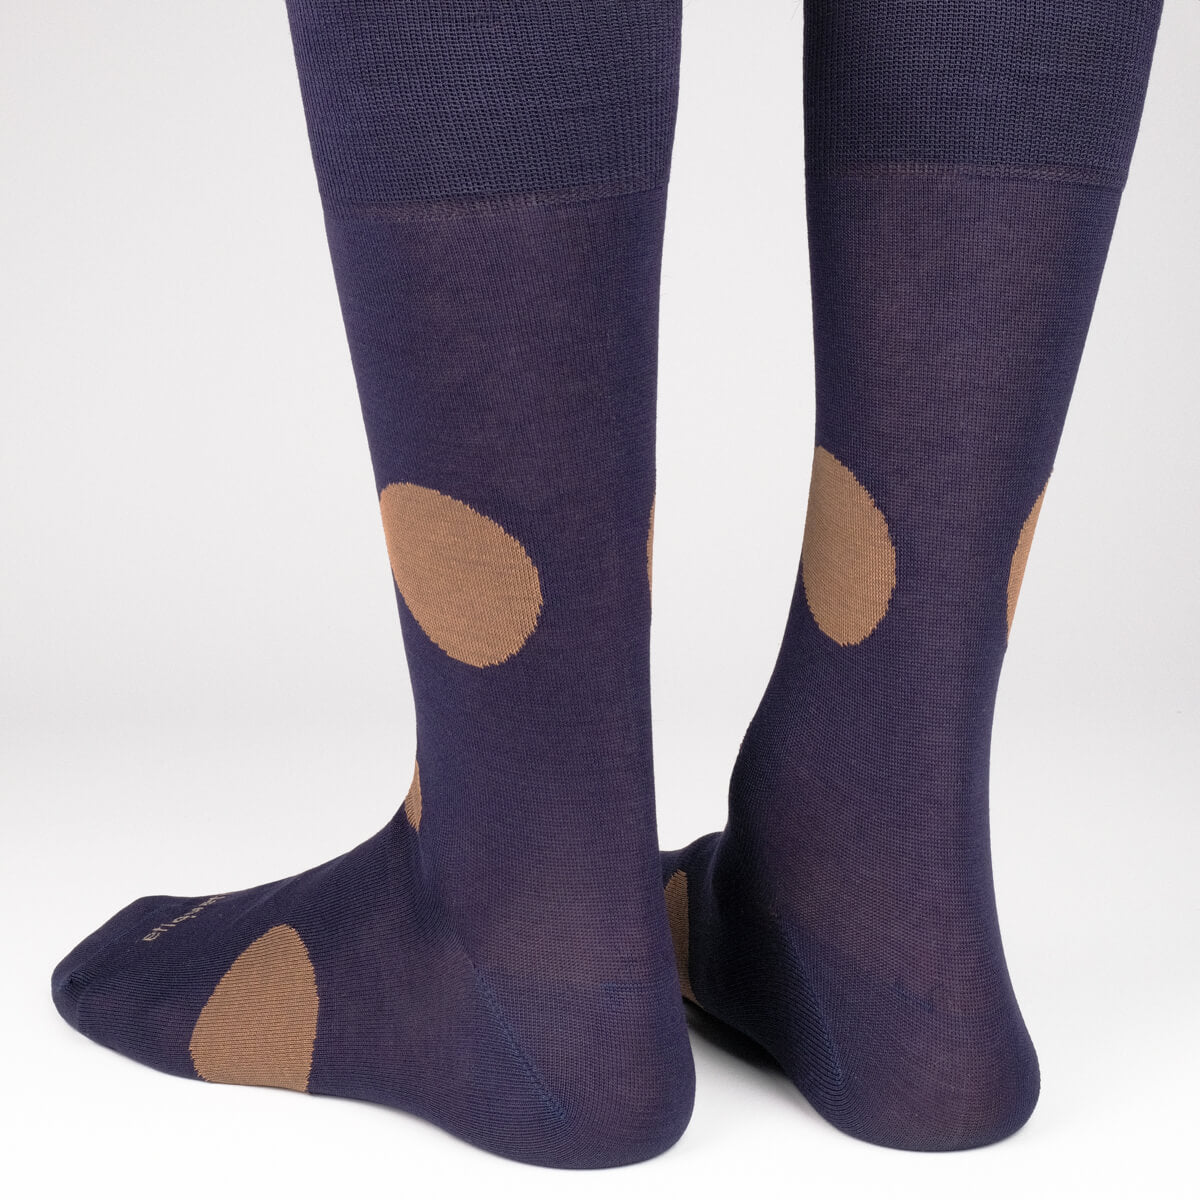 Mens Socks - Big Dots Men's Socks - Dark Blue⎪Etiquette Clothiers